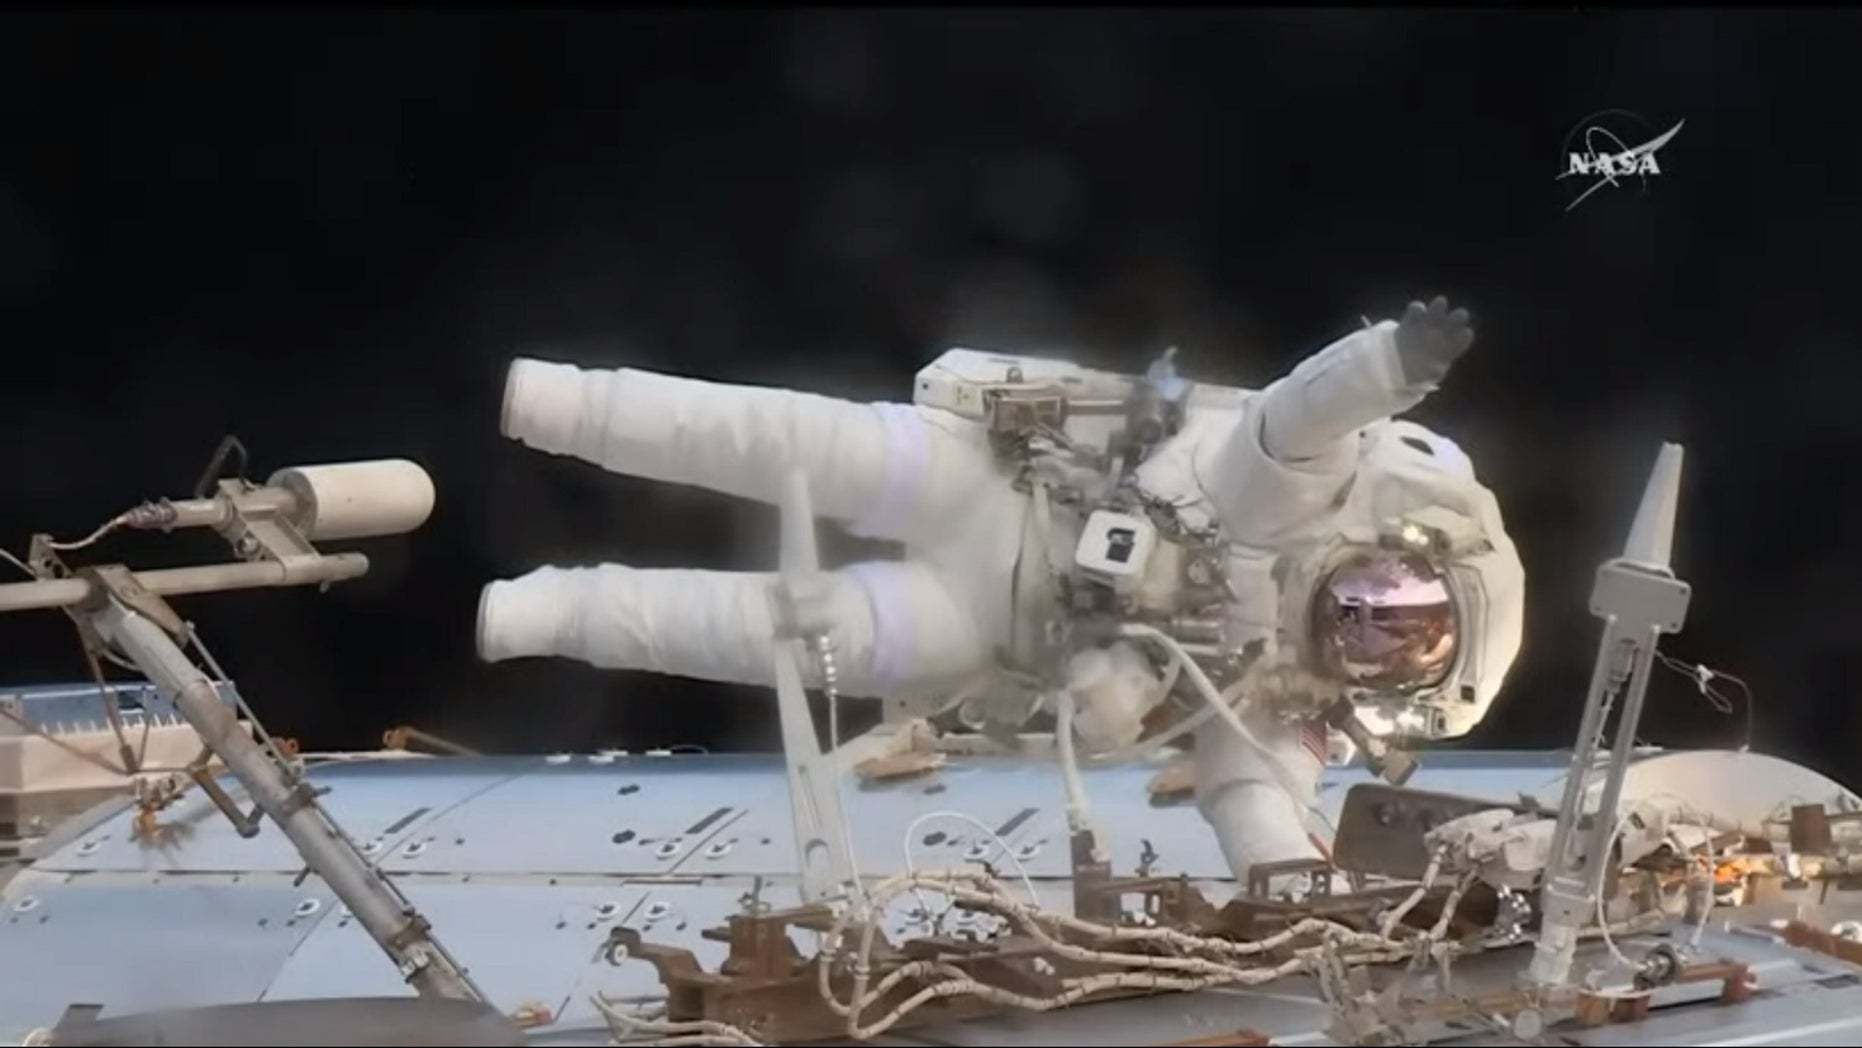 During a spacewalk May 23, NASA astronaut Jack Fischer waved at French astronaut Thomas Pesquet, filming from inside the International Space Station, as Fischer worked to install wireless antennas outside the Destiny lab. The spacewalk's main purpose was to replace a failed data relay box.